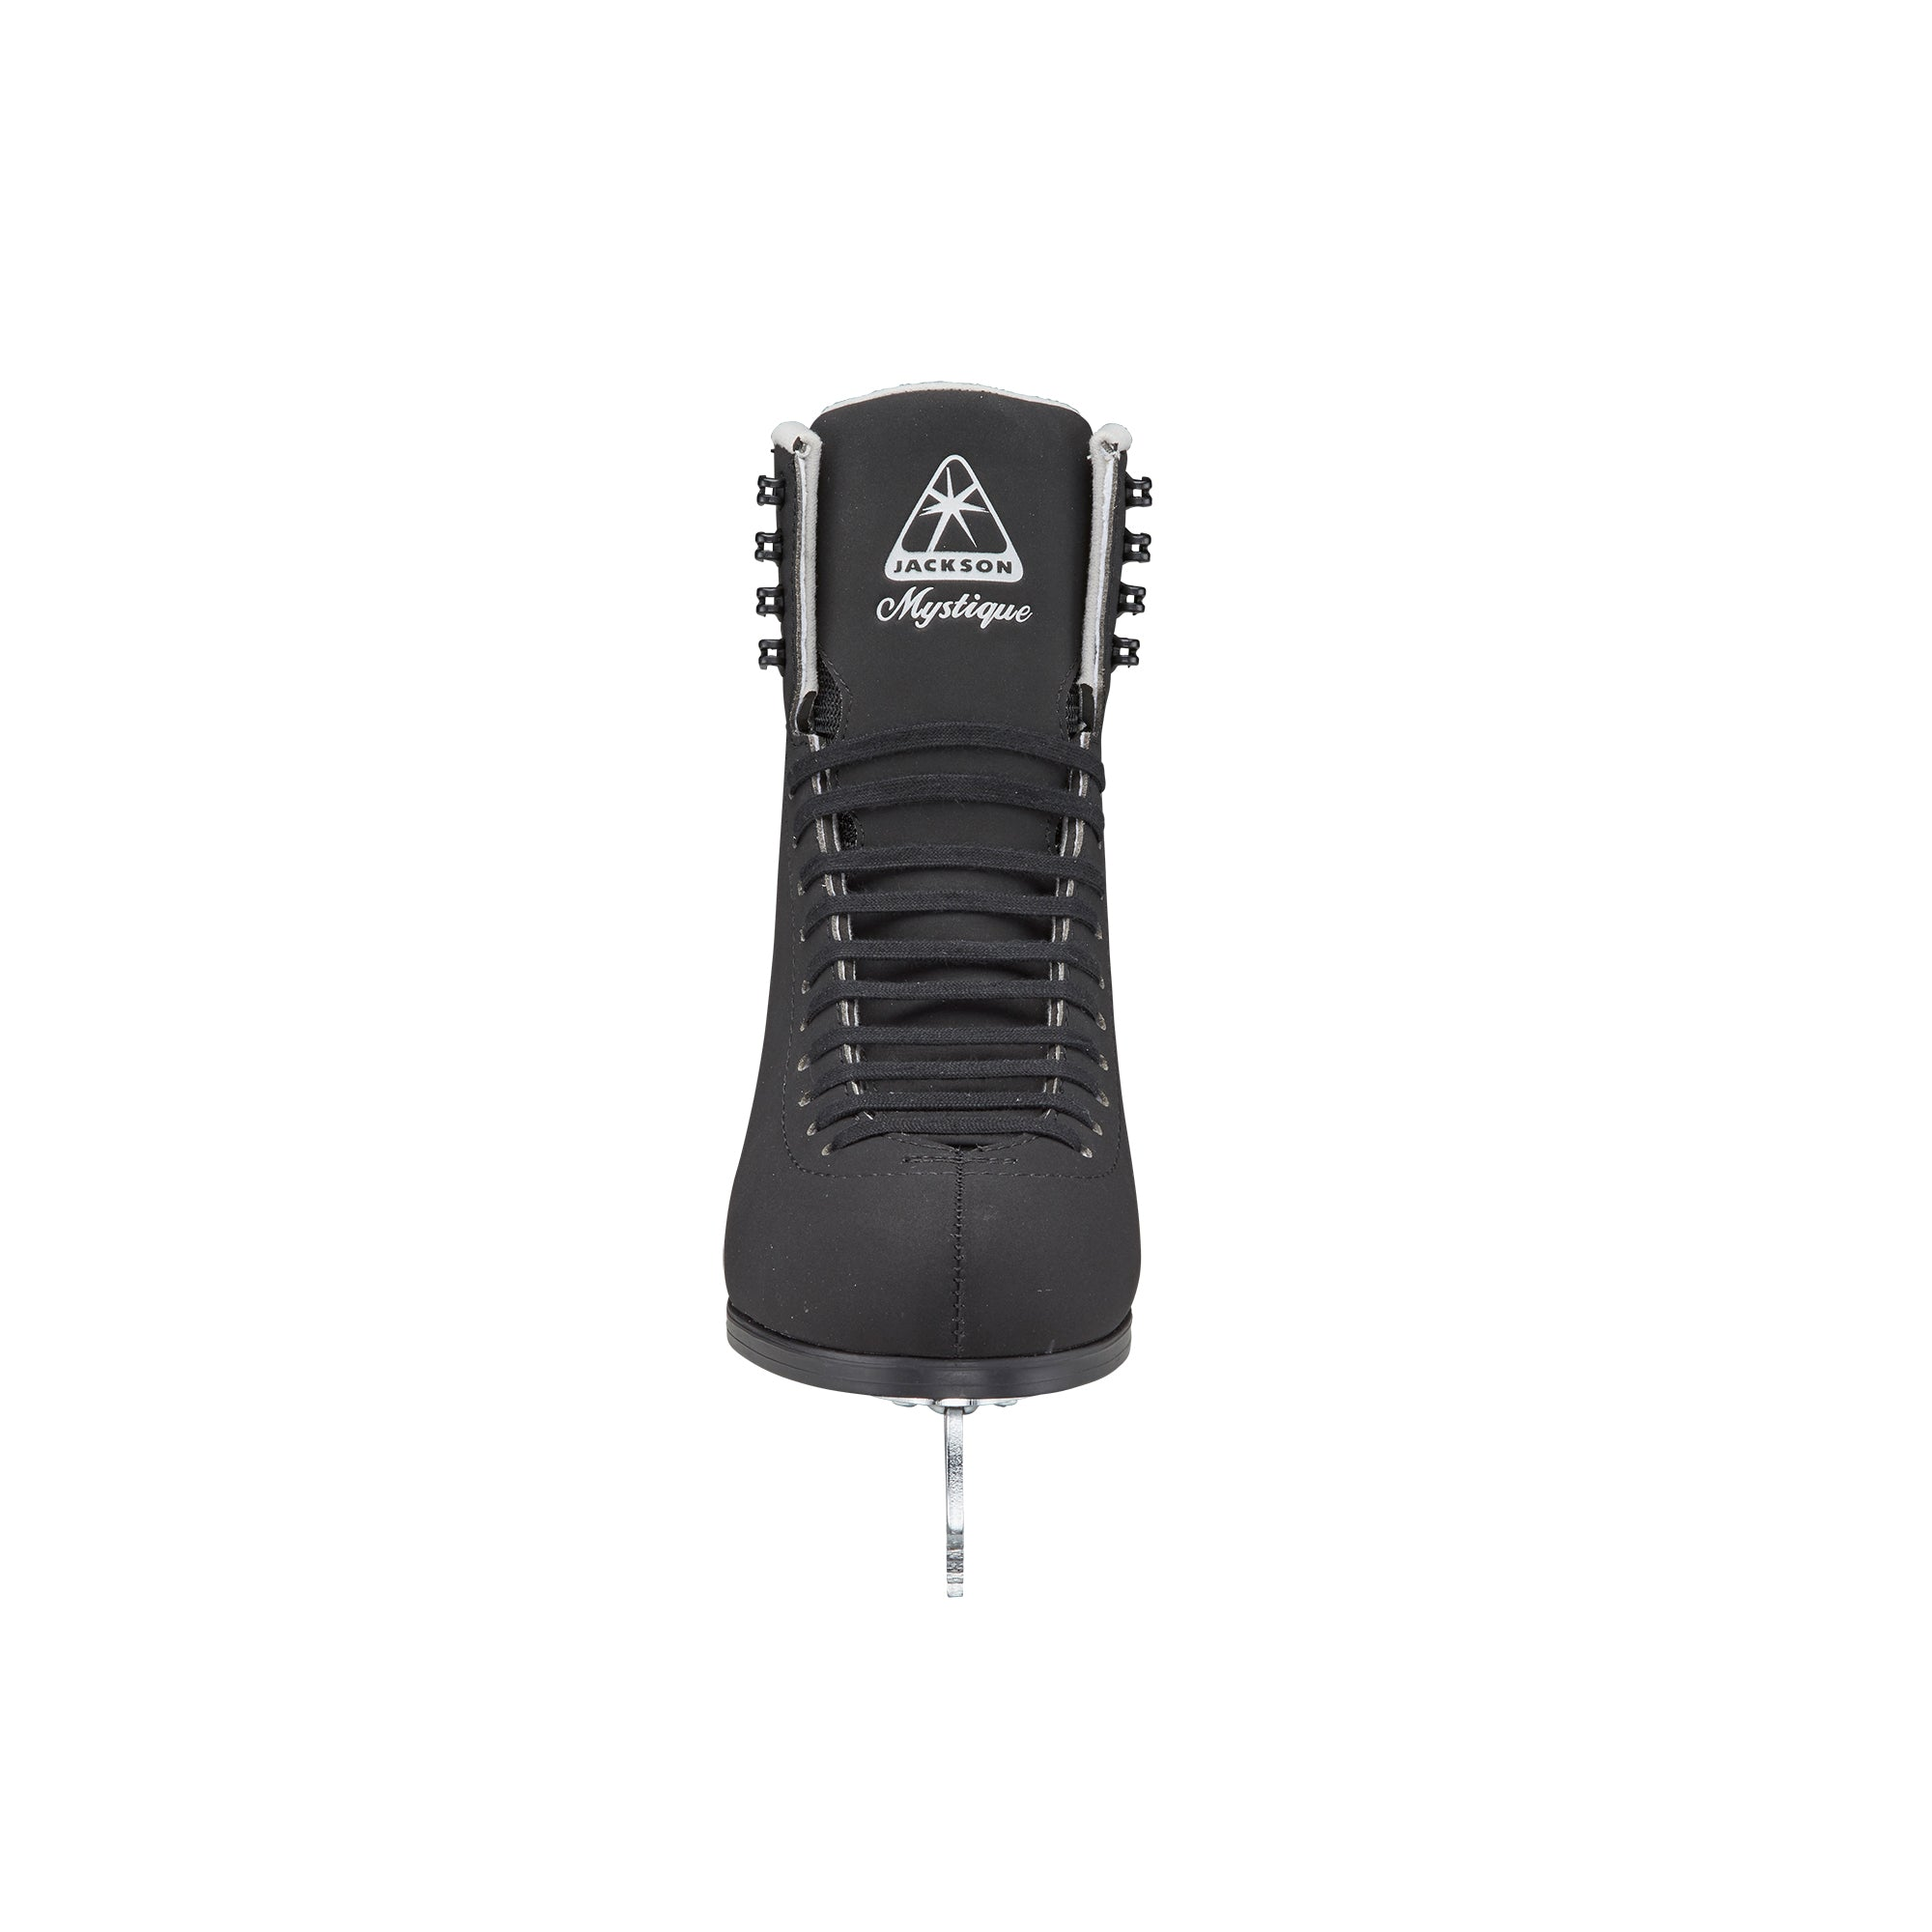 JACKSON MYSTIQUE<br>(MEN'S/BOY'S/YOUTH)